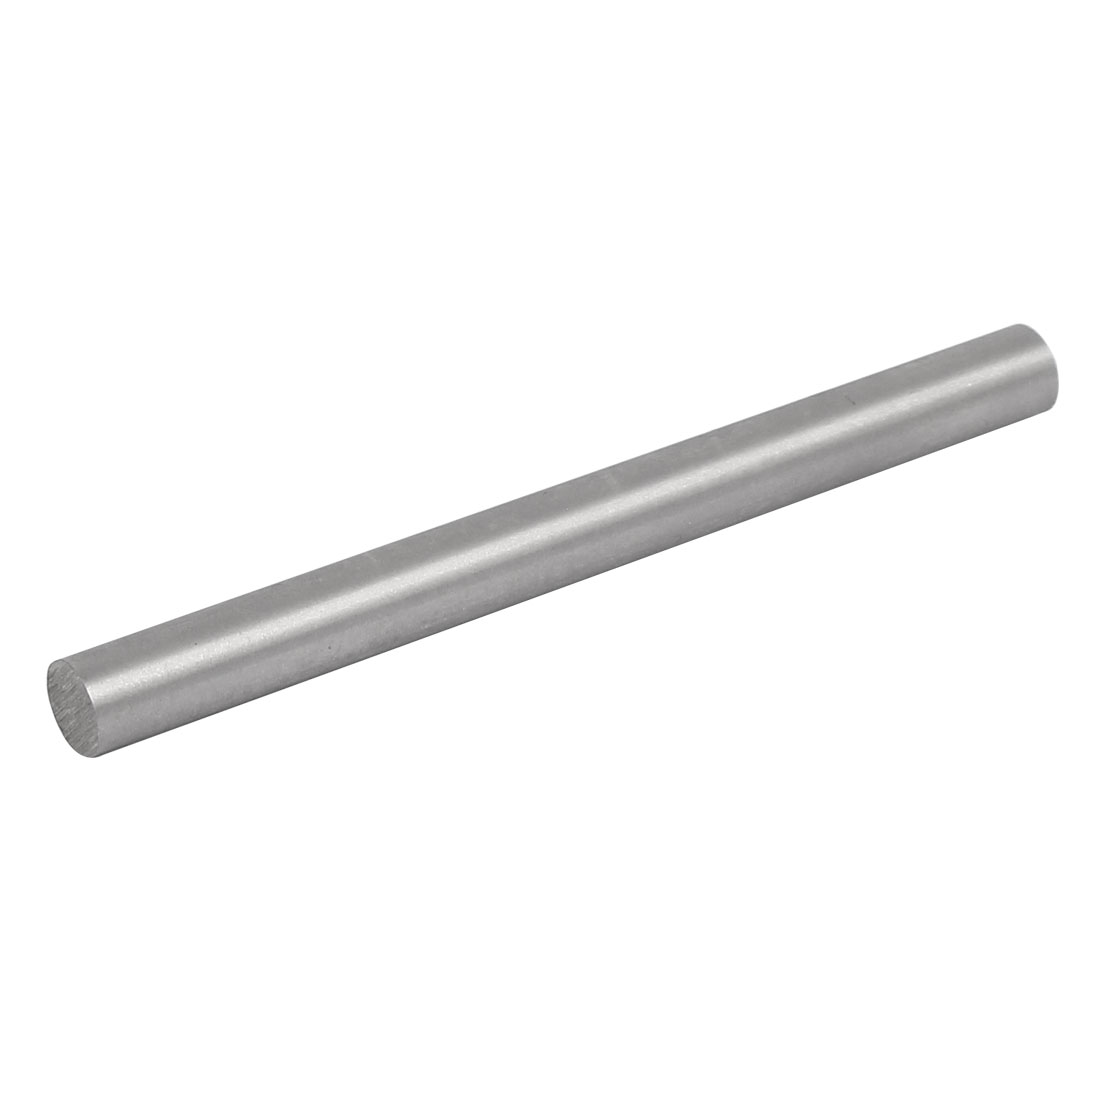 8.5mm Dia 100mm Length HSS Round Shaft Rod Bar Lathe Tools Gray